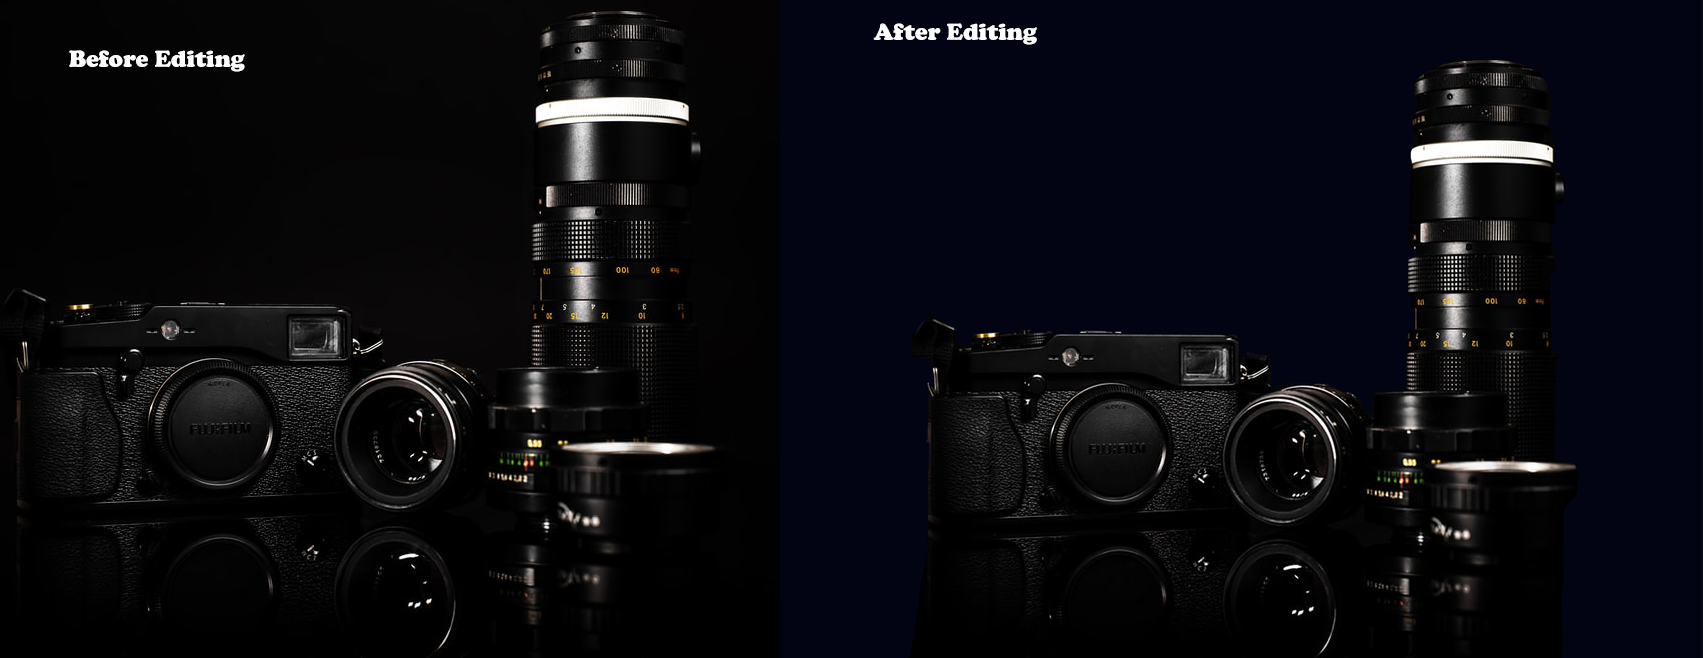 I will do background remove 5 image